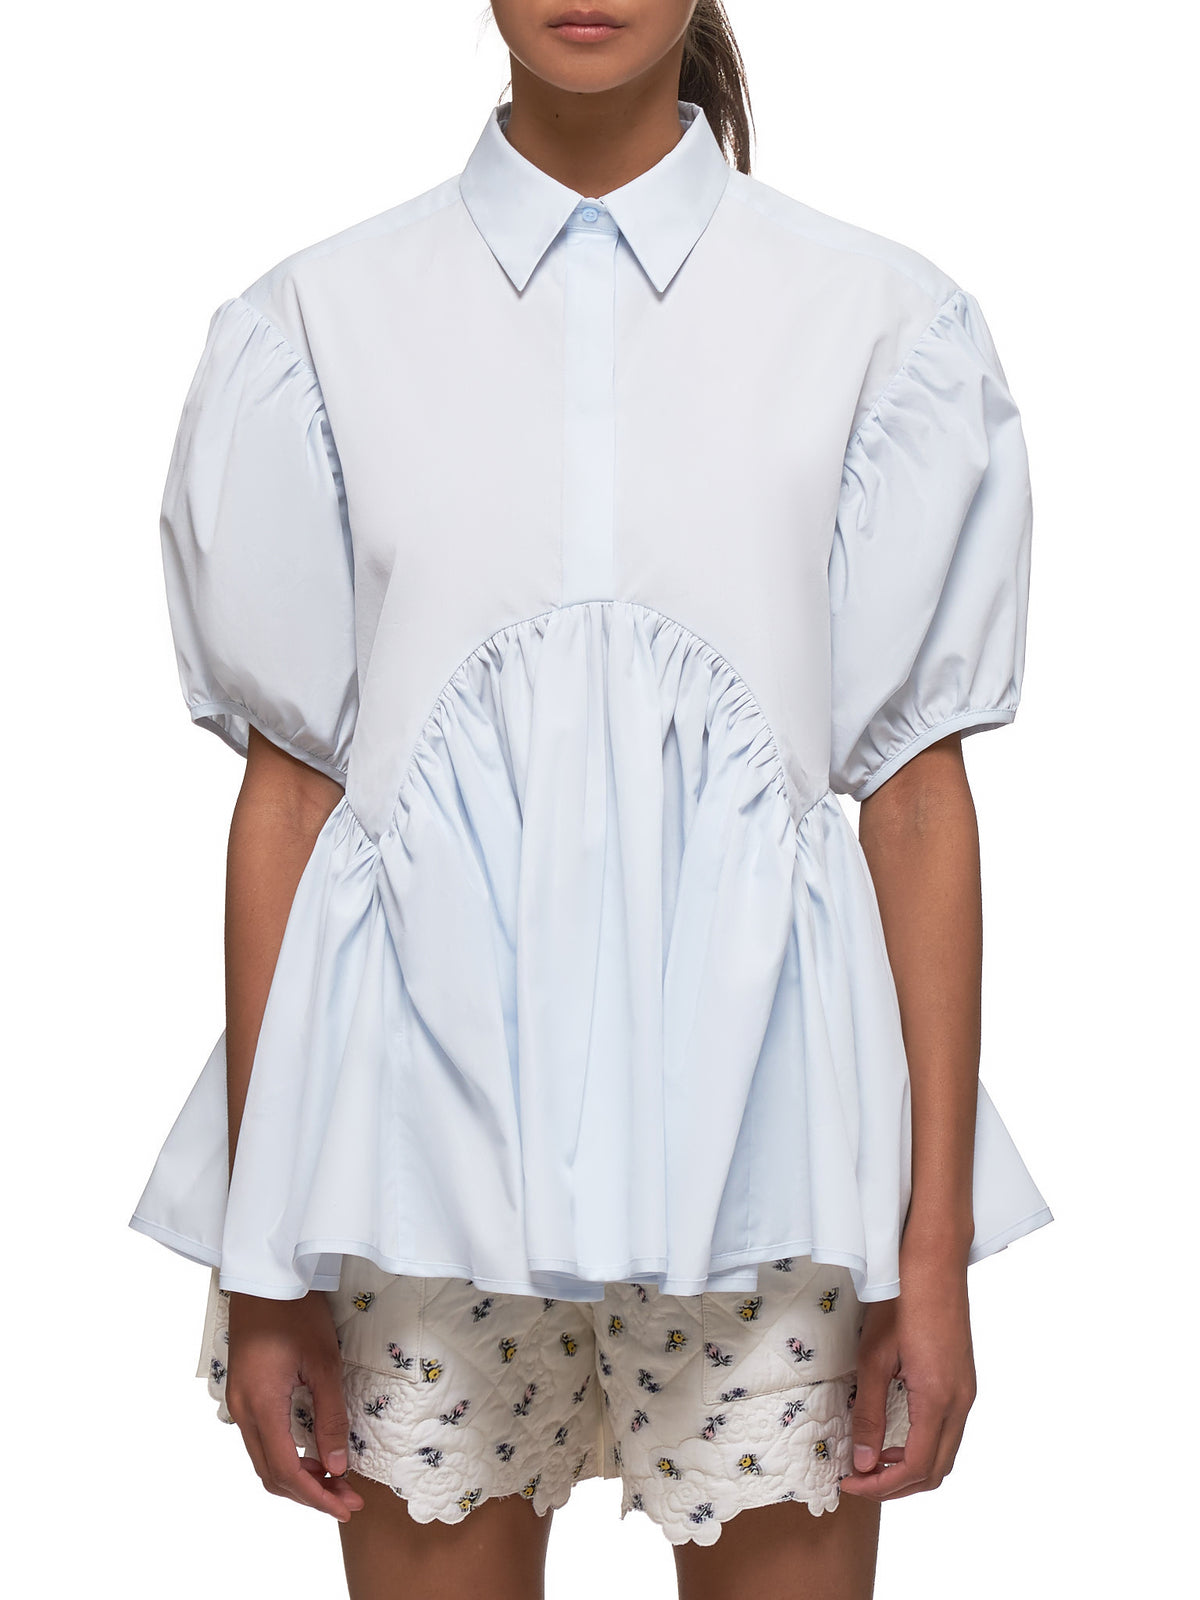 Ellie Blouse (0018-ELLIE-LIGHT-BLUE)